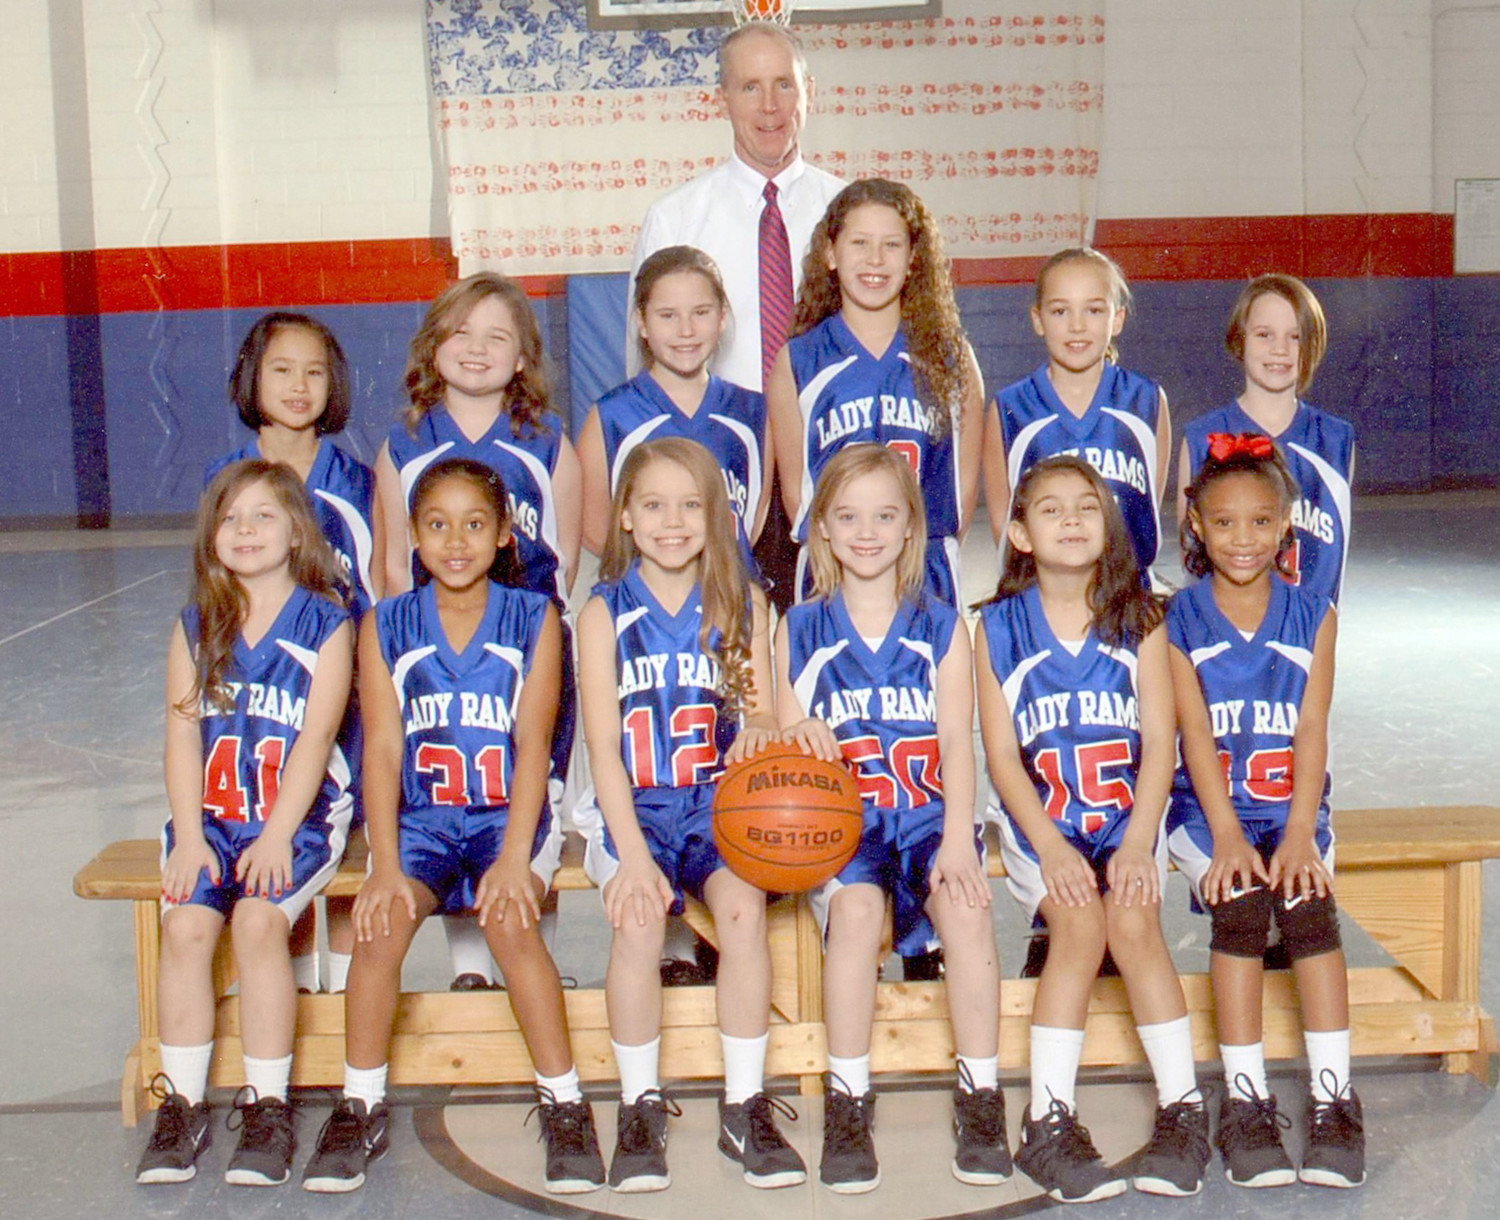 THE NORTH LEE Lady Rams second/third-grade basketball team won the Bradley County Elementary League championship recently. The Lady Rams finished the season with a perfect 21-0 record. First row, from left: Lilly Maddux, Jordan Johnson, Laney Copeland, Paisley Payne, Kaitlyn Mendez and Kaija Cox. Second row: Madi McDonald, Kayla Holt, Isabella Hill, Emily Patterson, Lola Meyers and Abby Hernandez. Lady Rams coach David Hancock is at back.